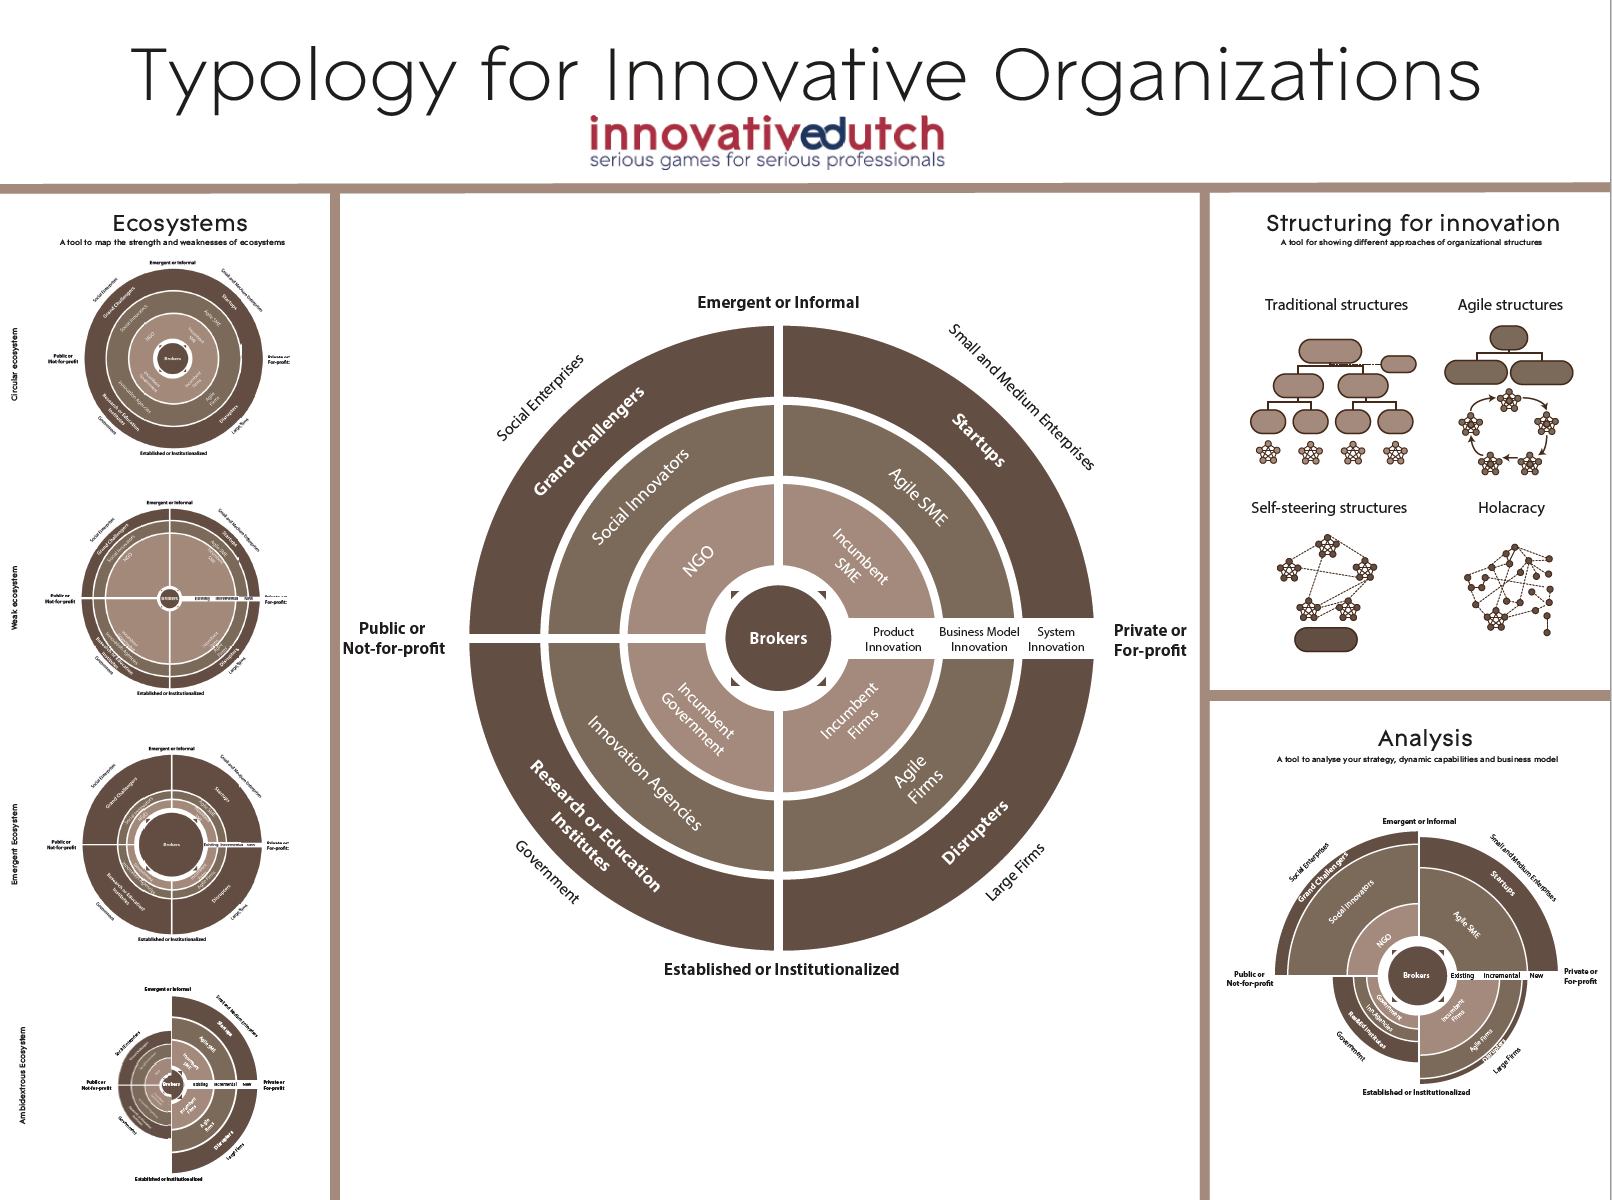 Typology for Innovative Organizations.